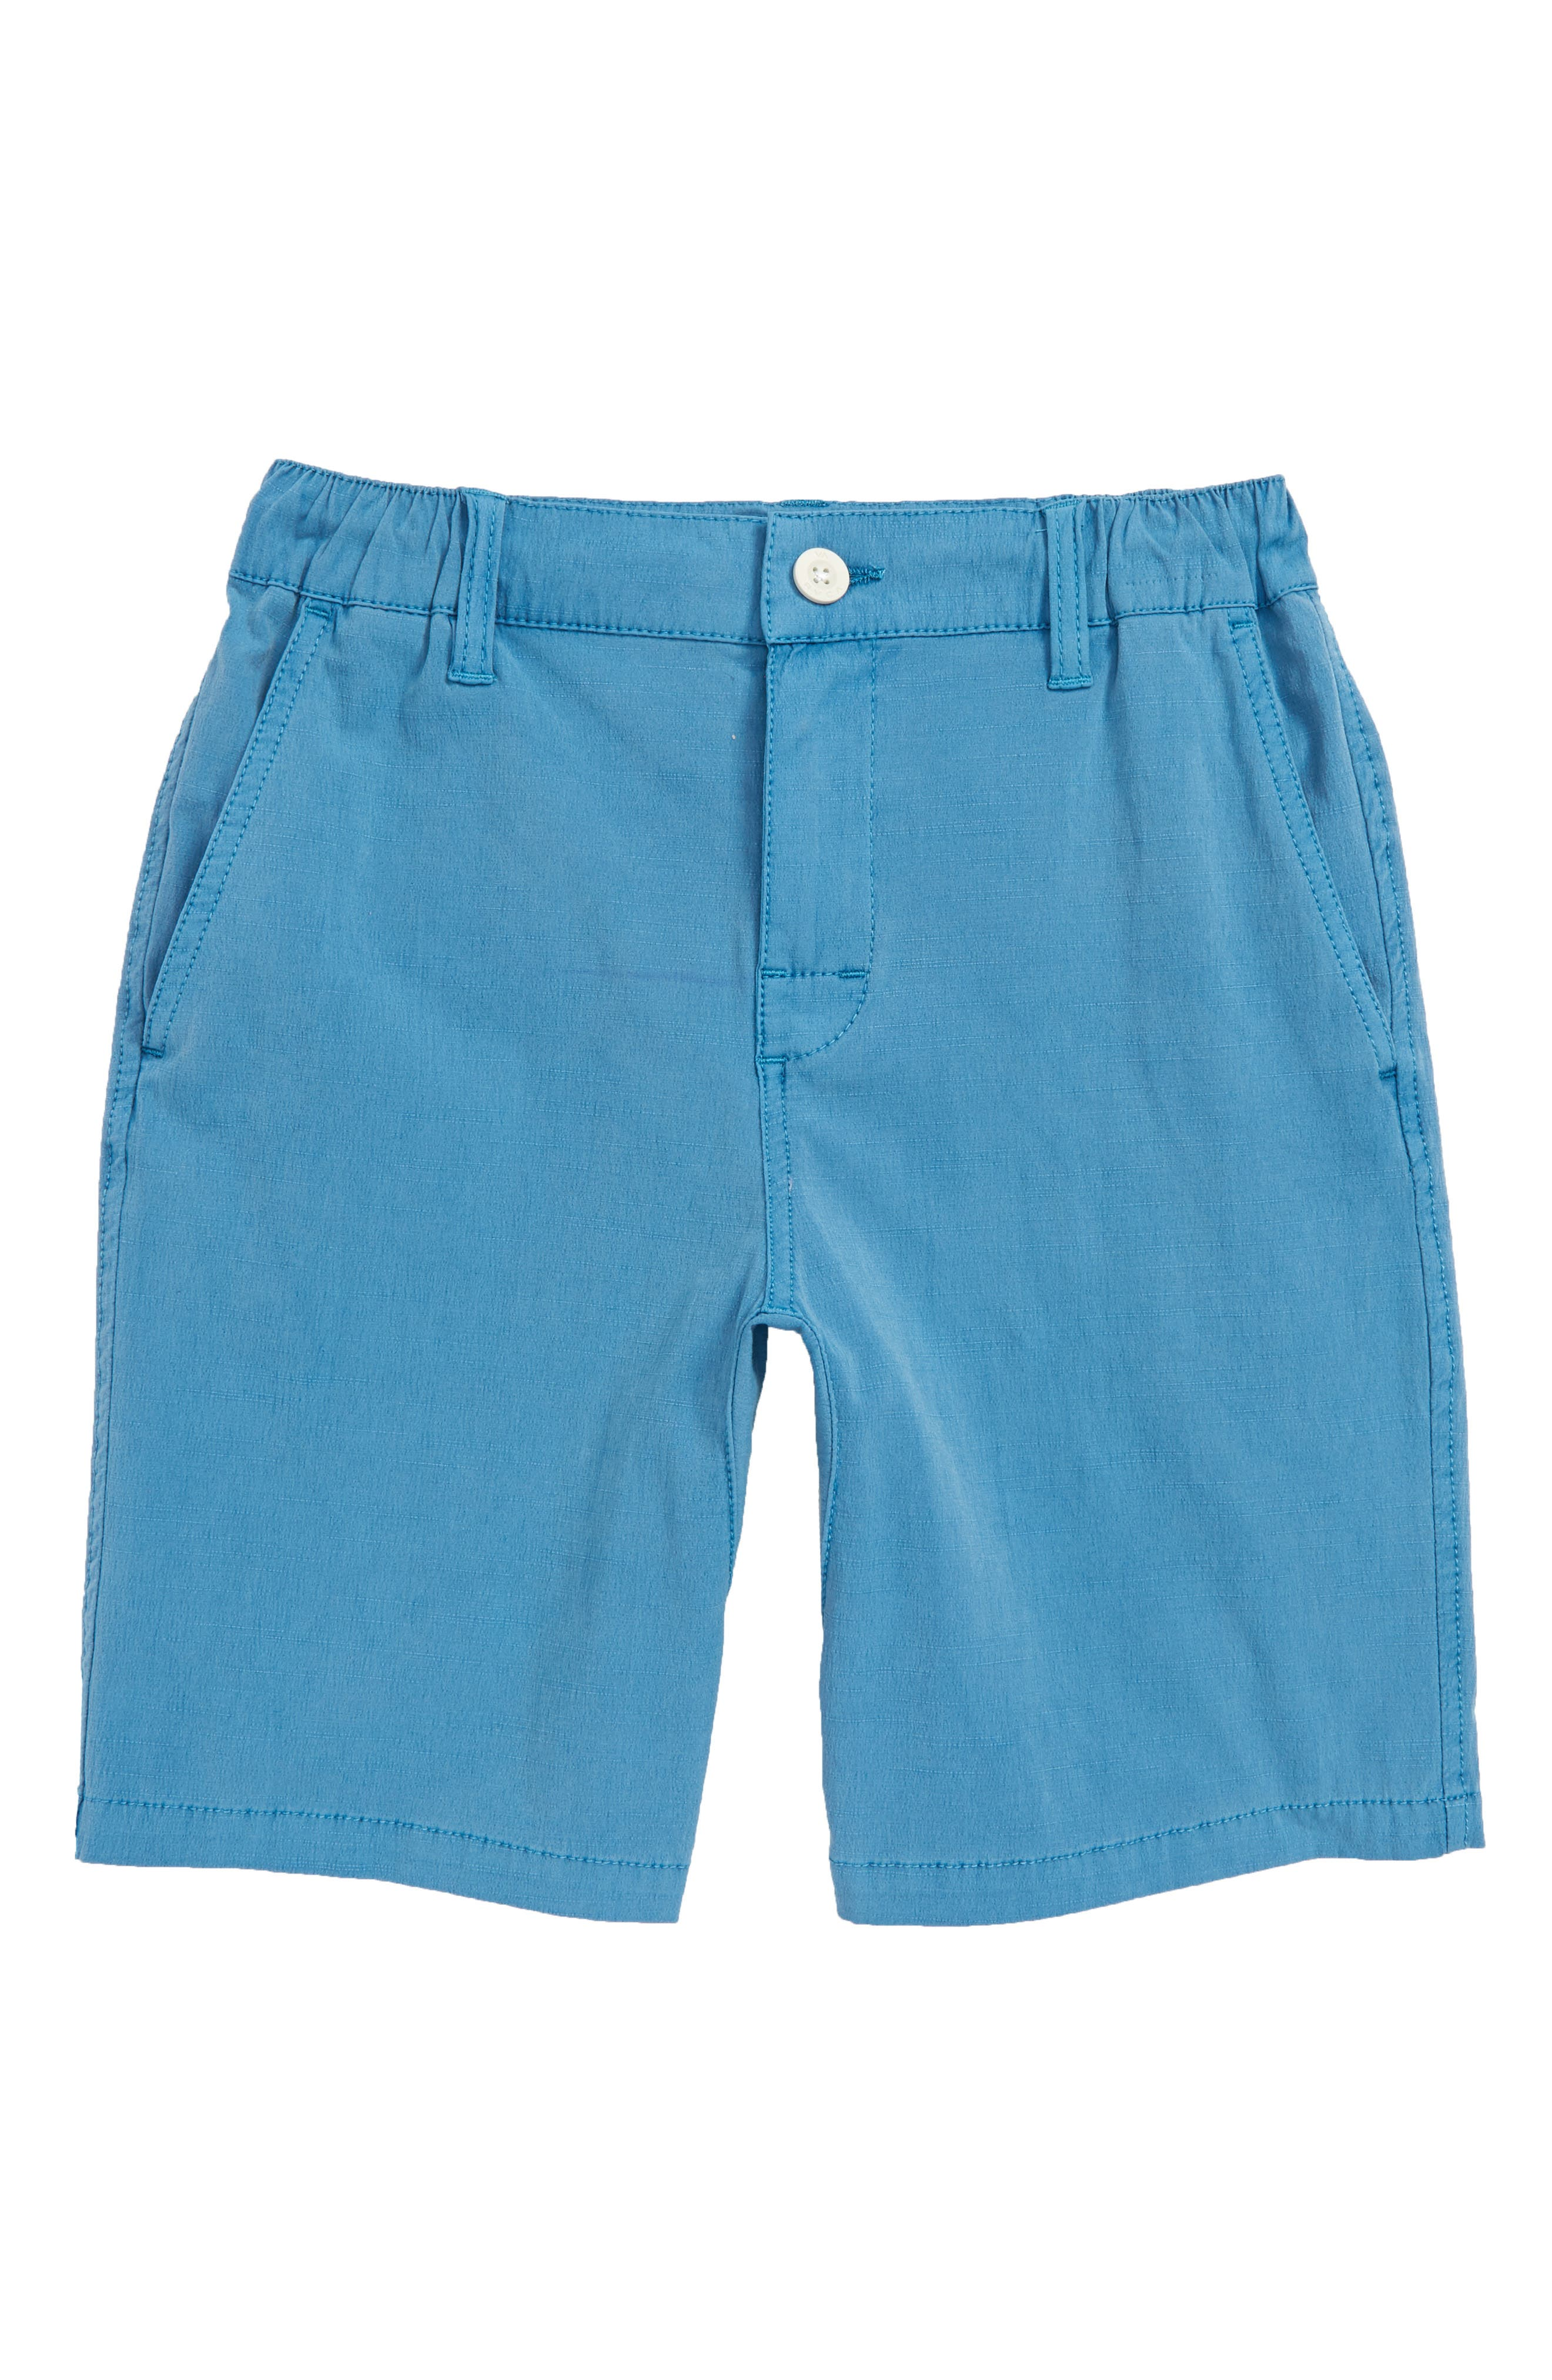 All Time Coastal SOL Hybrid Shorts,                             Main thumbnail 1, color,                             460